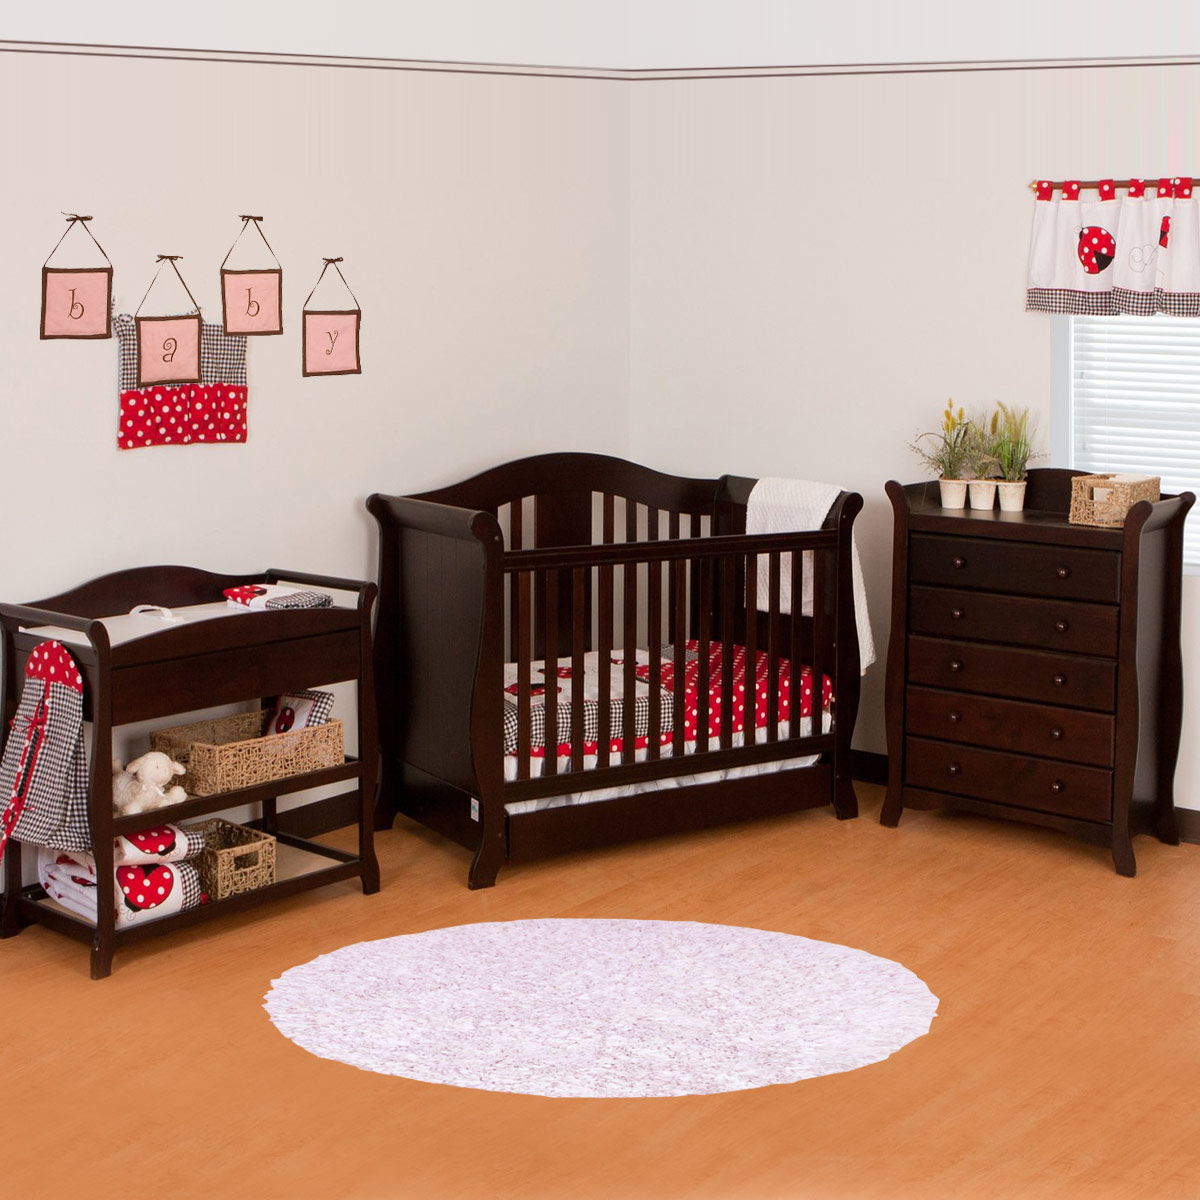 Storkcraft 3 Piece Nursery Set   Vittoria Convertible Crib, Aspen Changing  Table And Avalon 5 Drawer Dresser In Espresso FREE SHIPPING